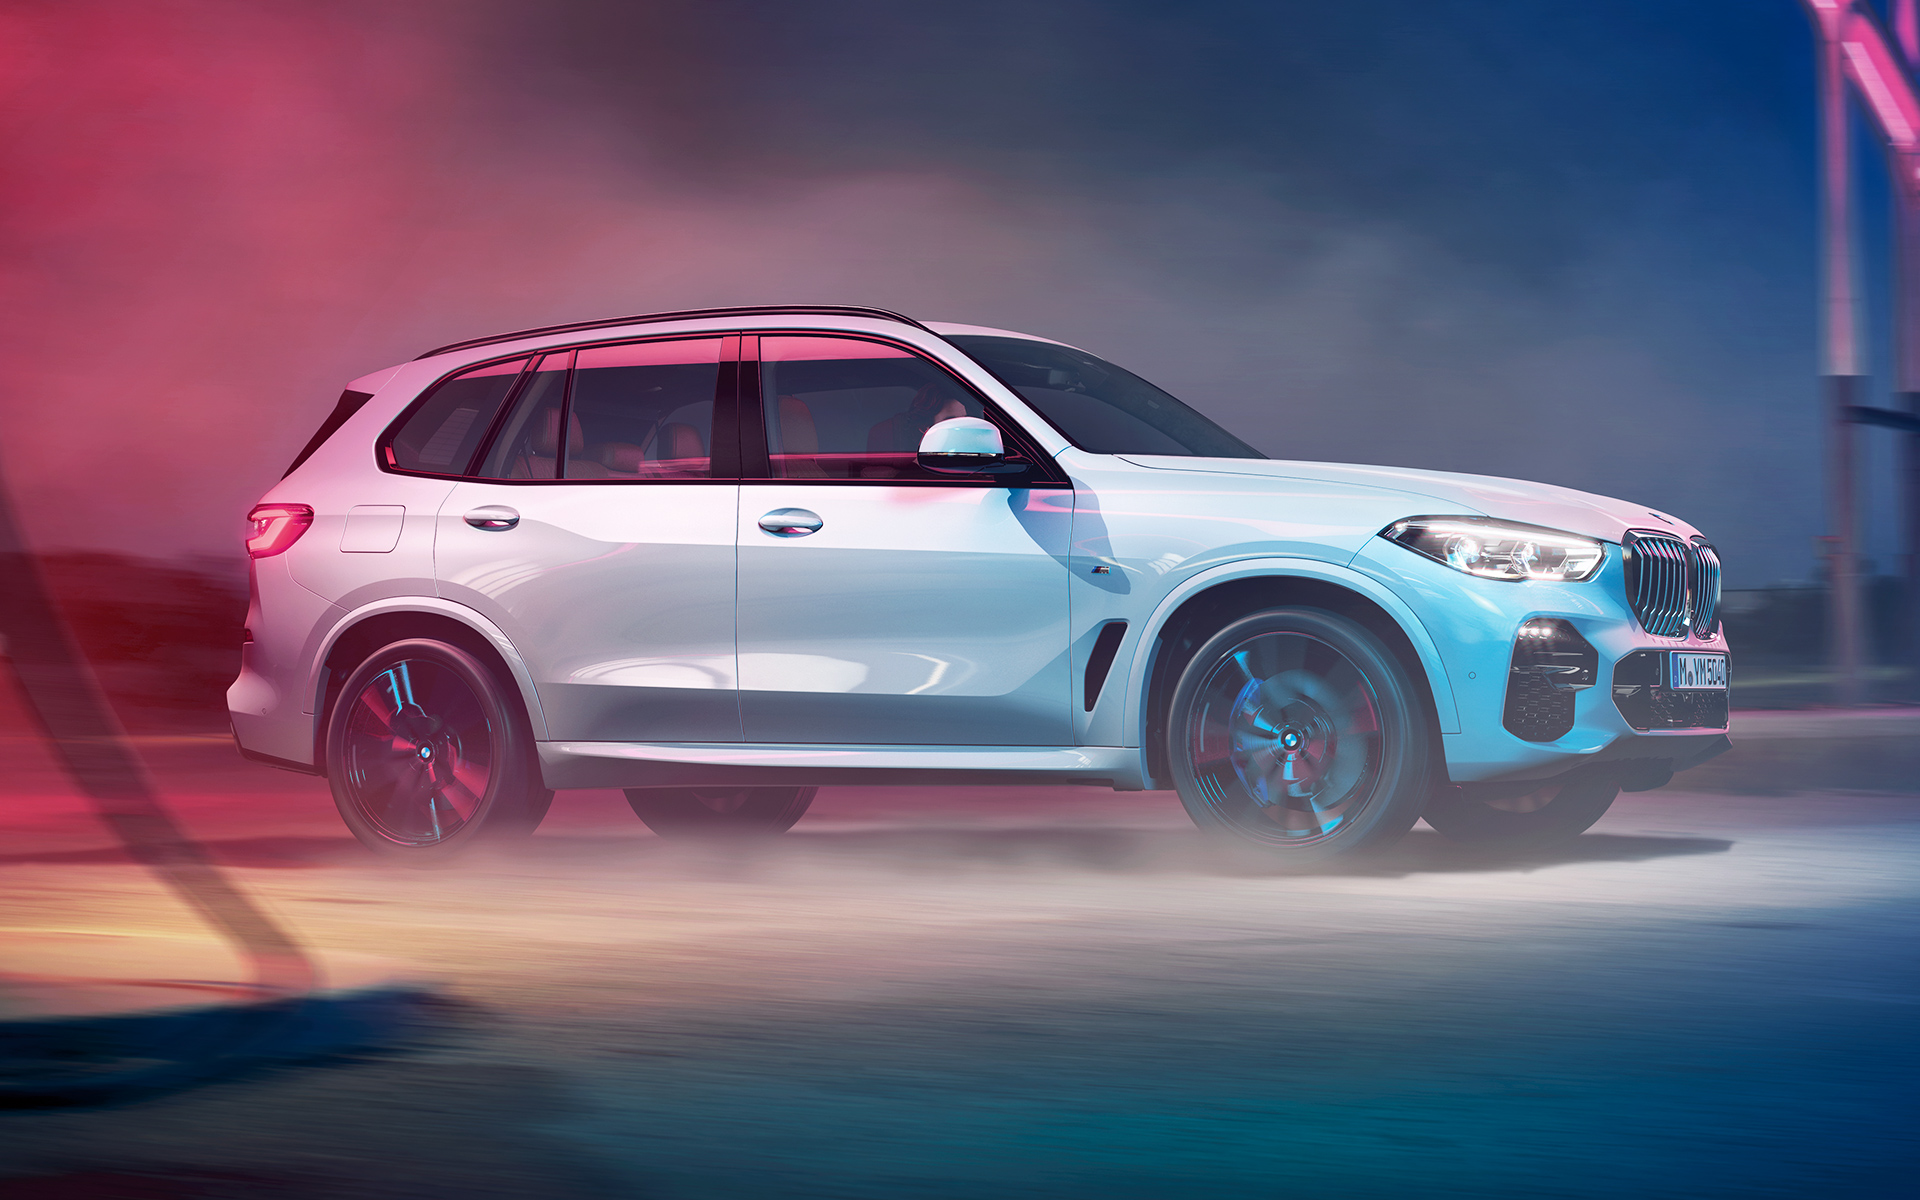 Bmw X5 Xdrive 30d Dealer Select Automotive Broker Samochodowy